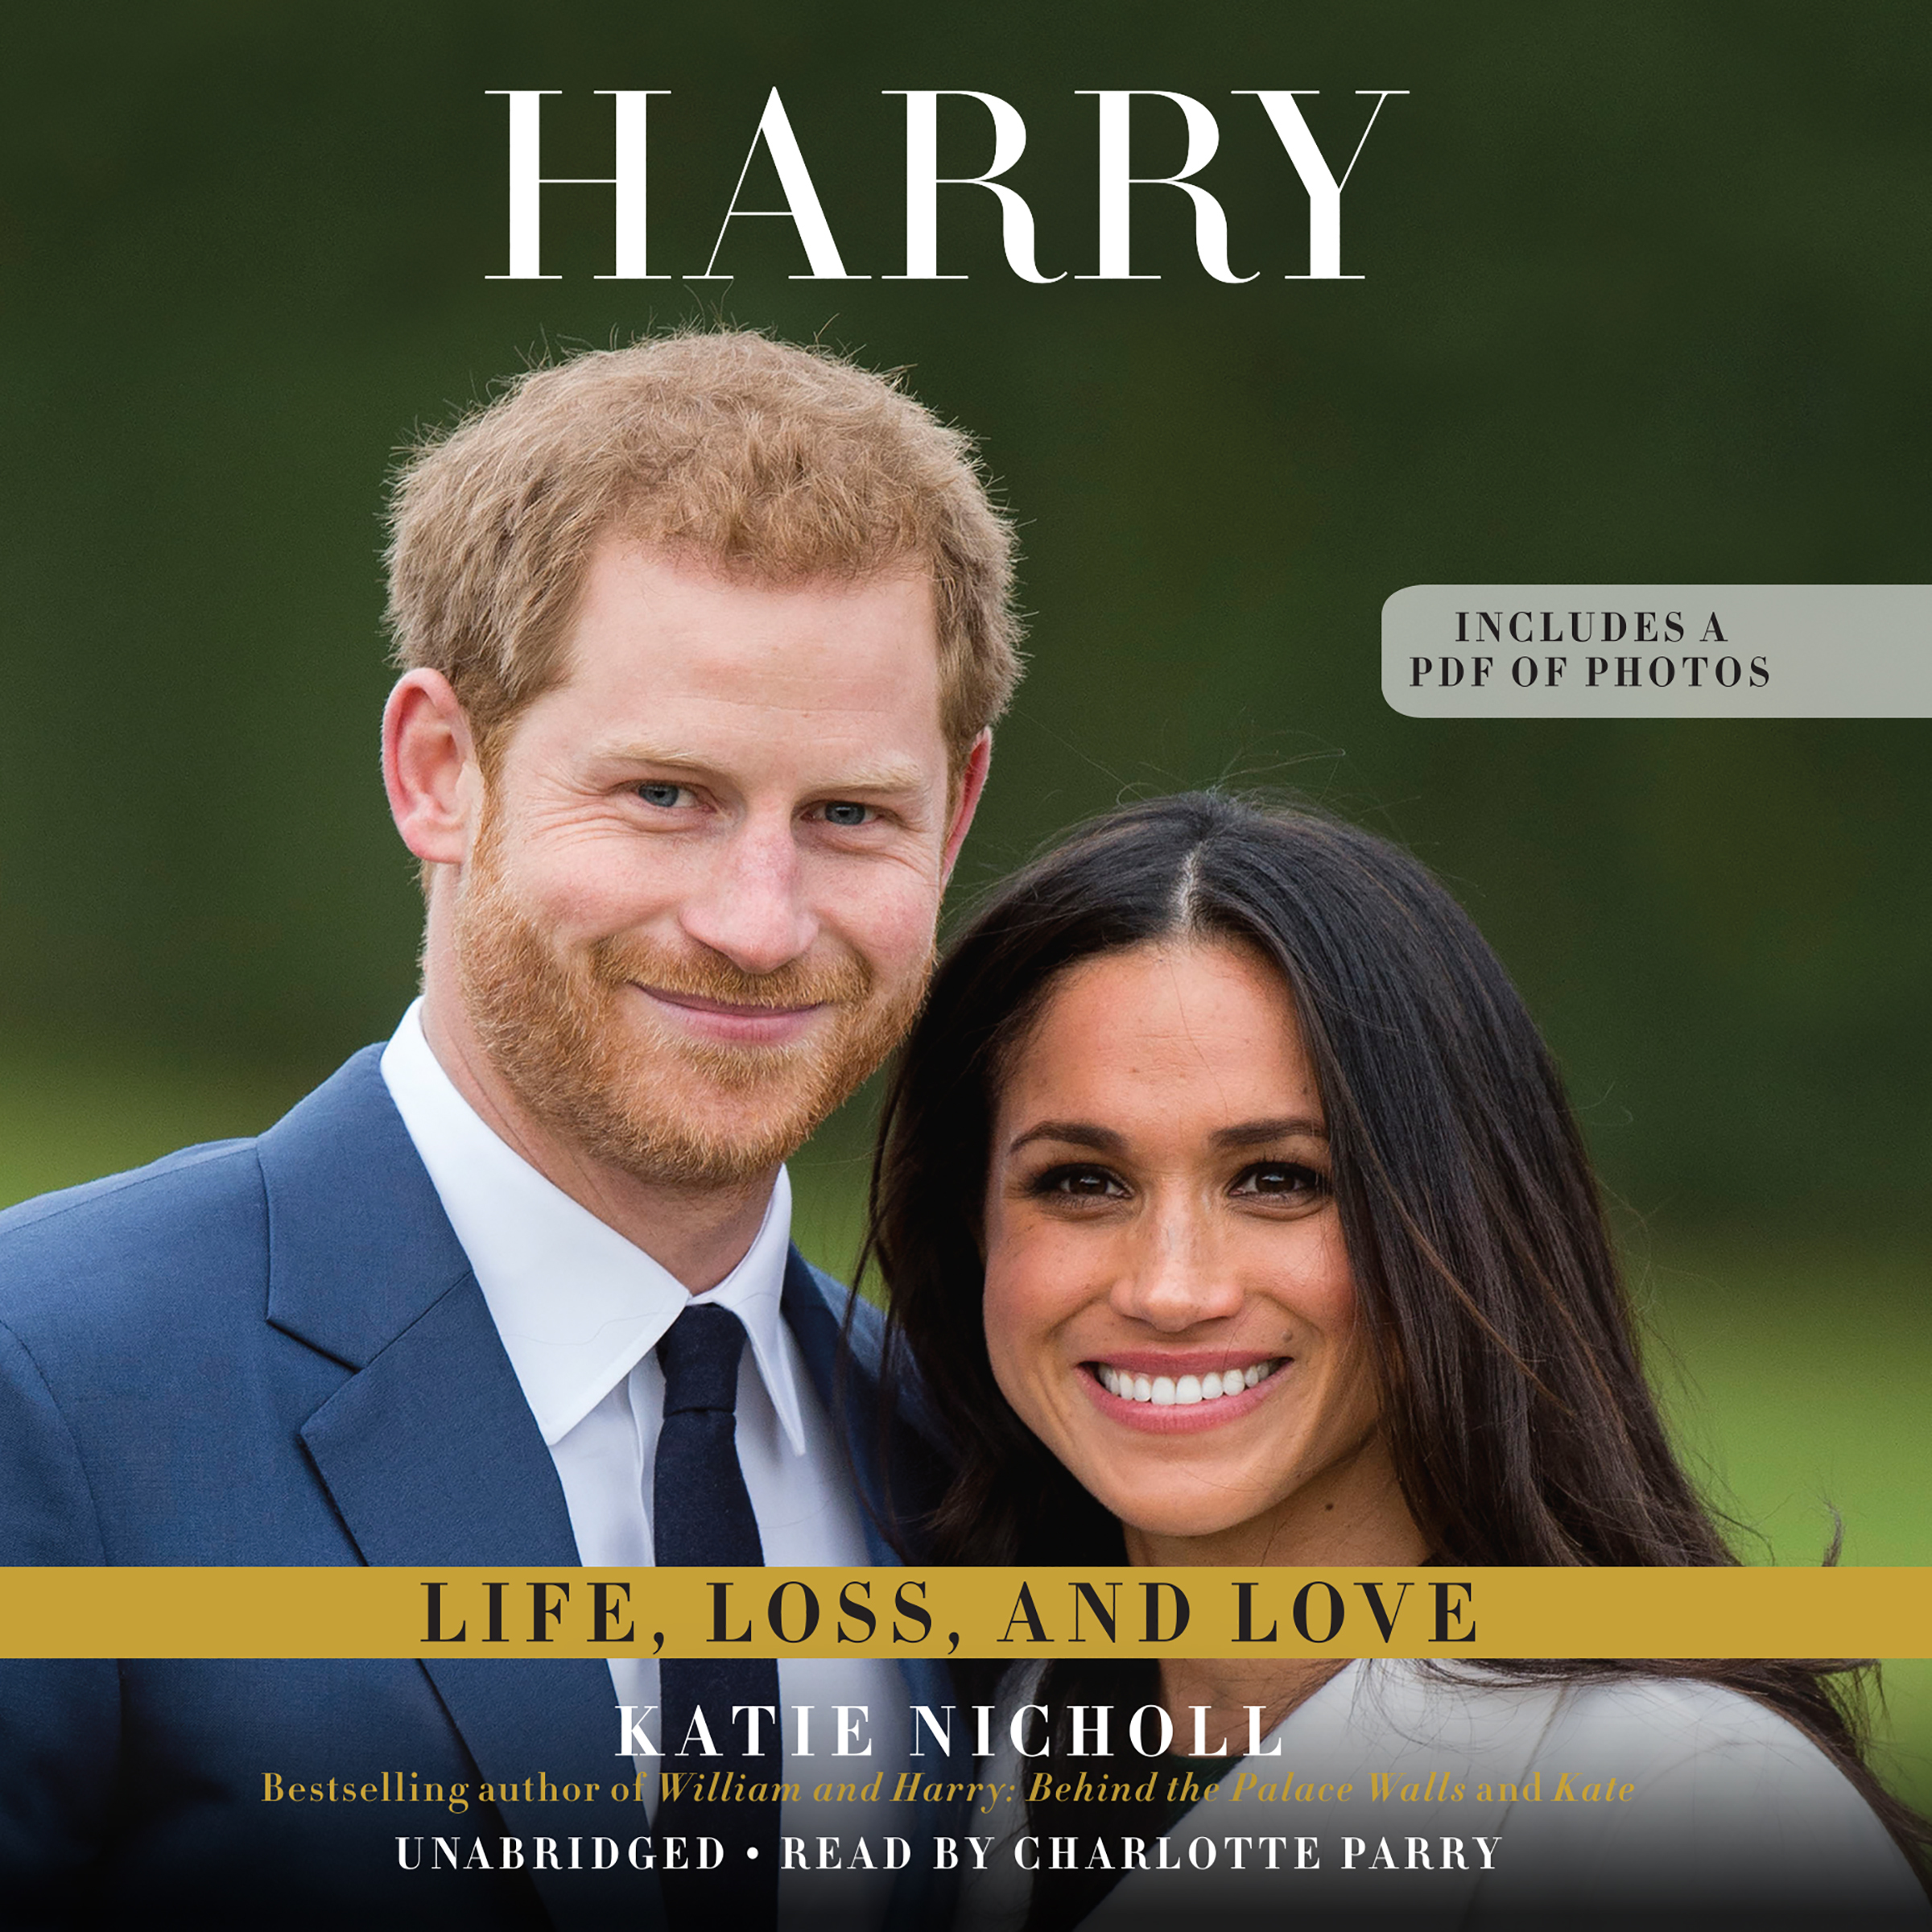 Printable Harry: Life, Loss, and Love Audiobook Cover Art